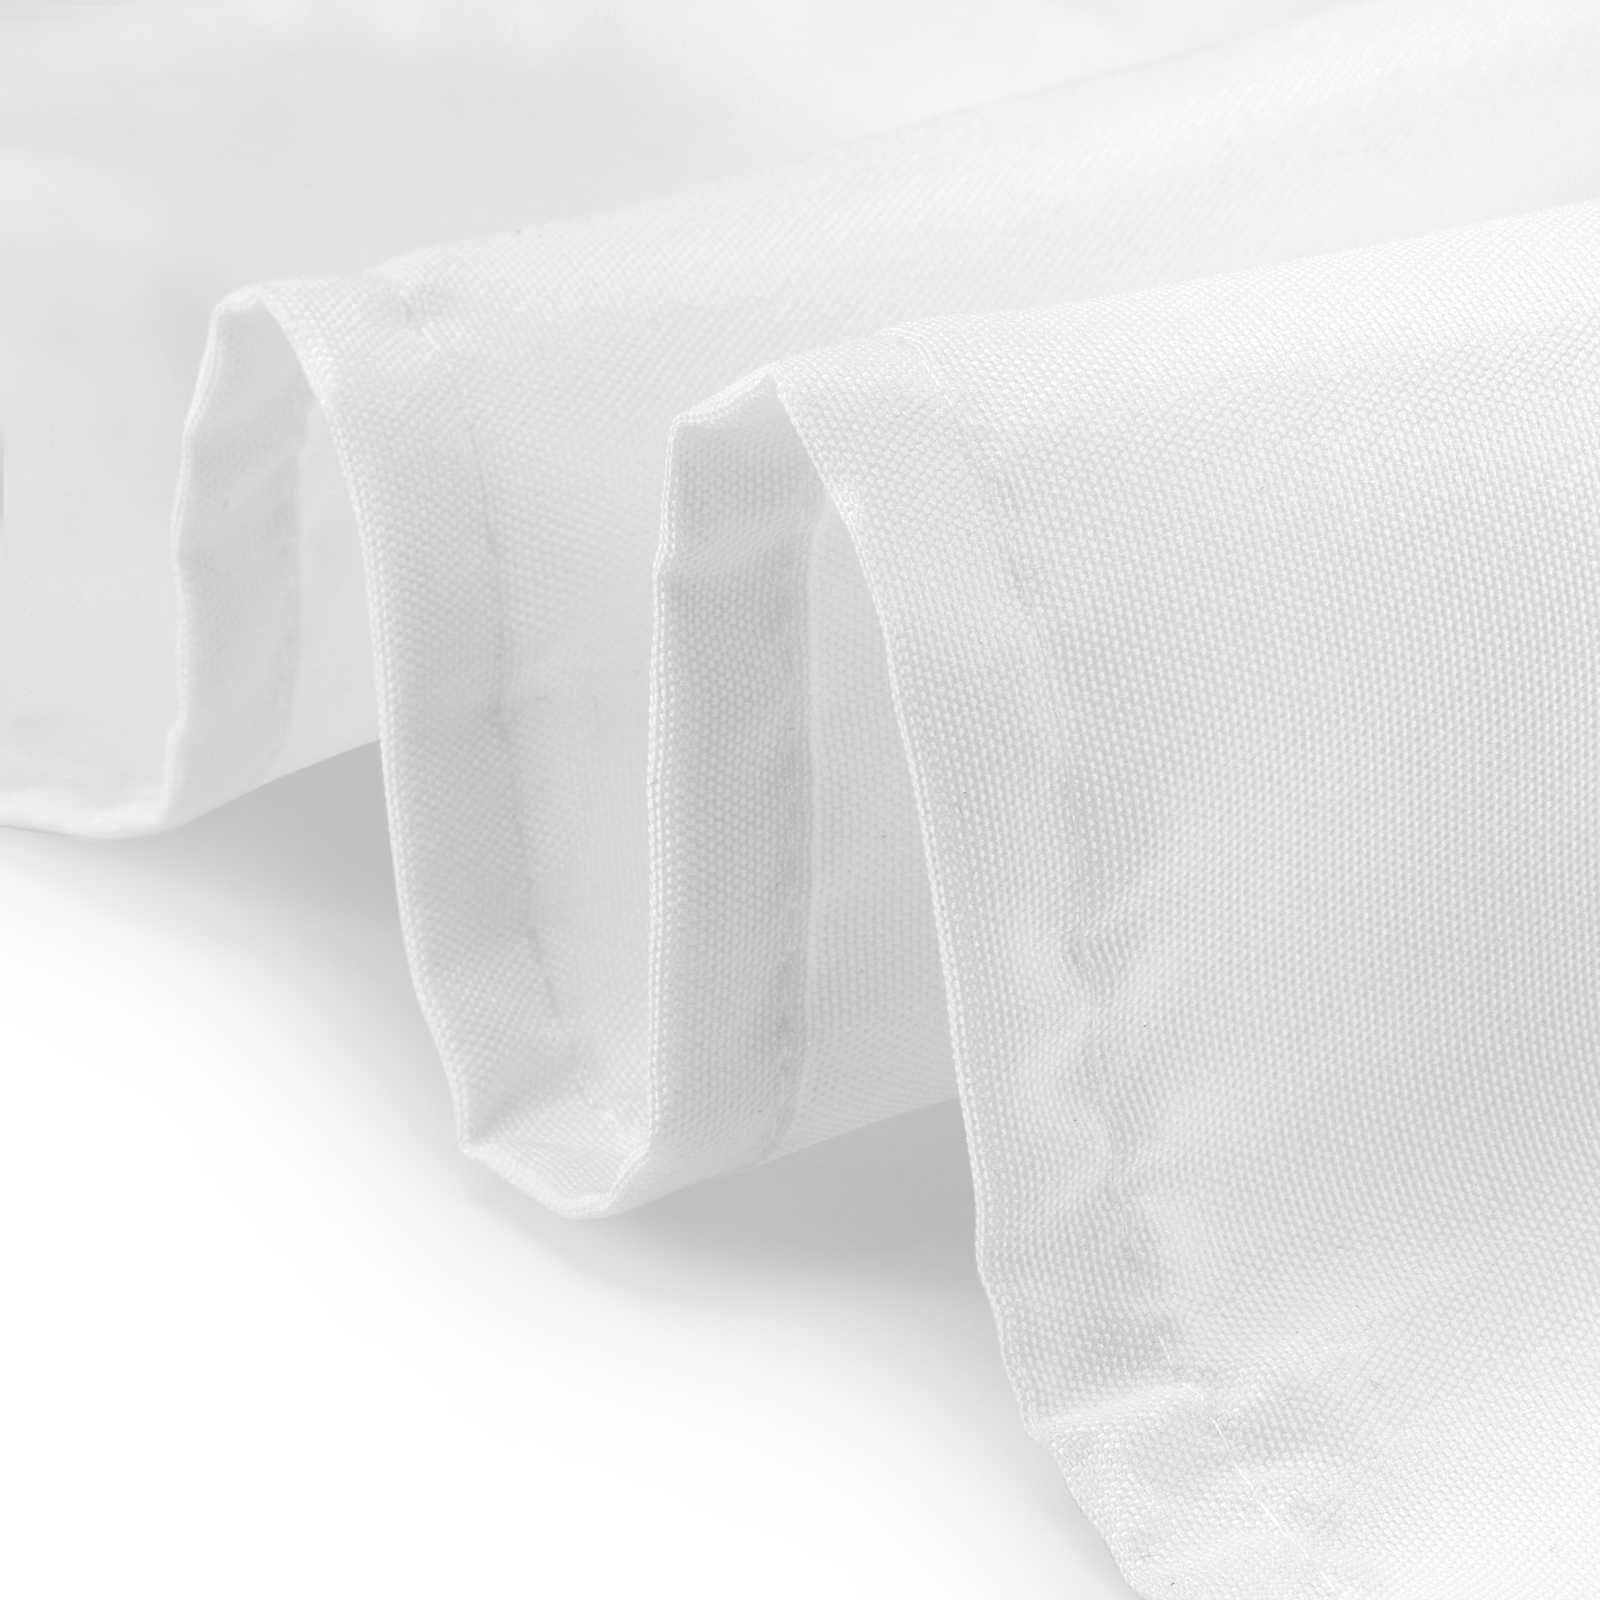 Lann's Linens - 20 Pack of 108'' Round White Polyester Tablecloth Covers for Weddings, Banquets, or Restaurants by Lanns Linens (Image #2)